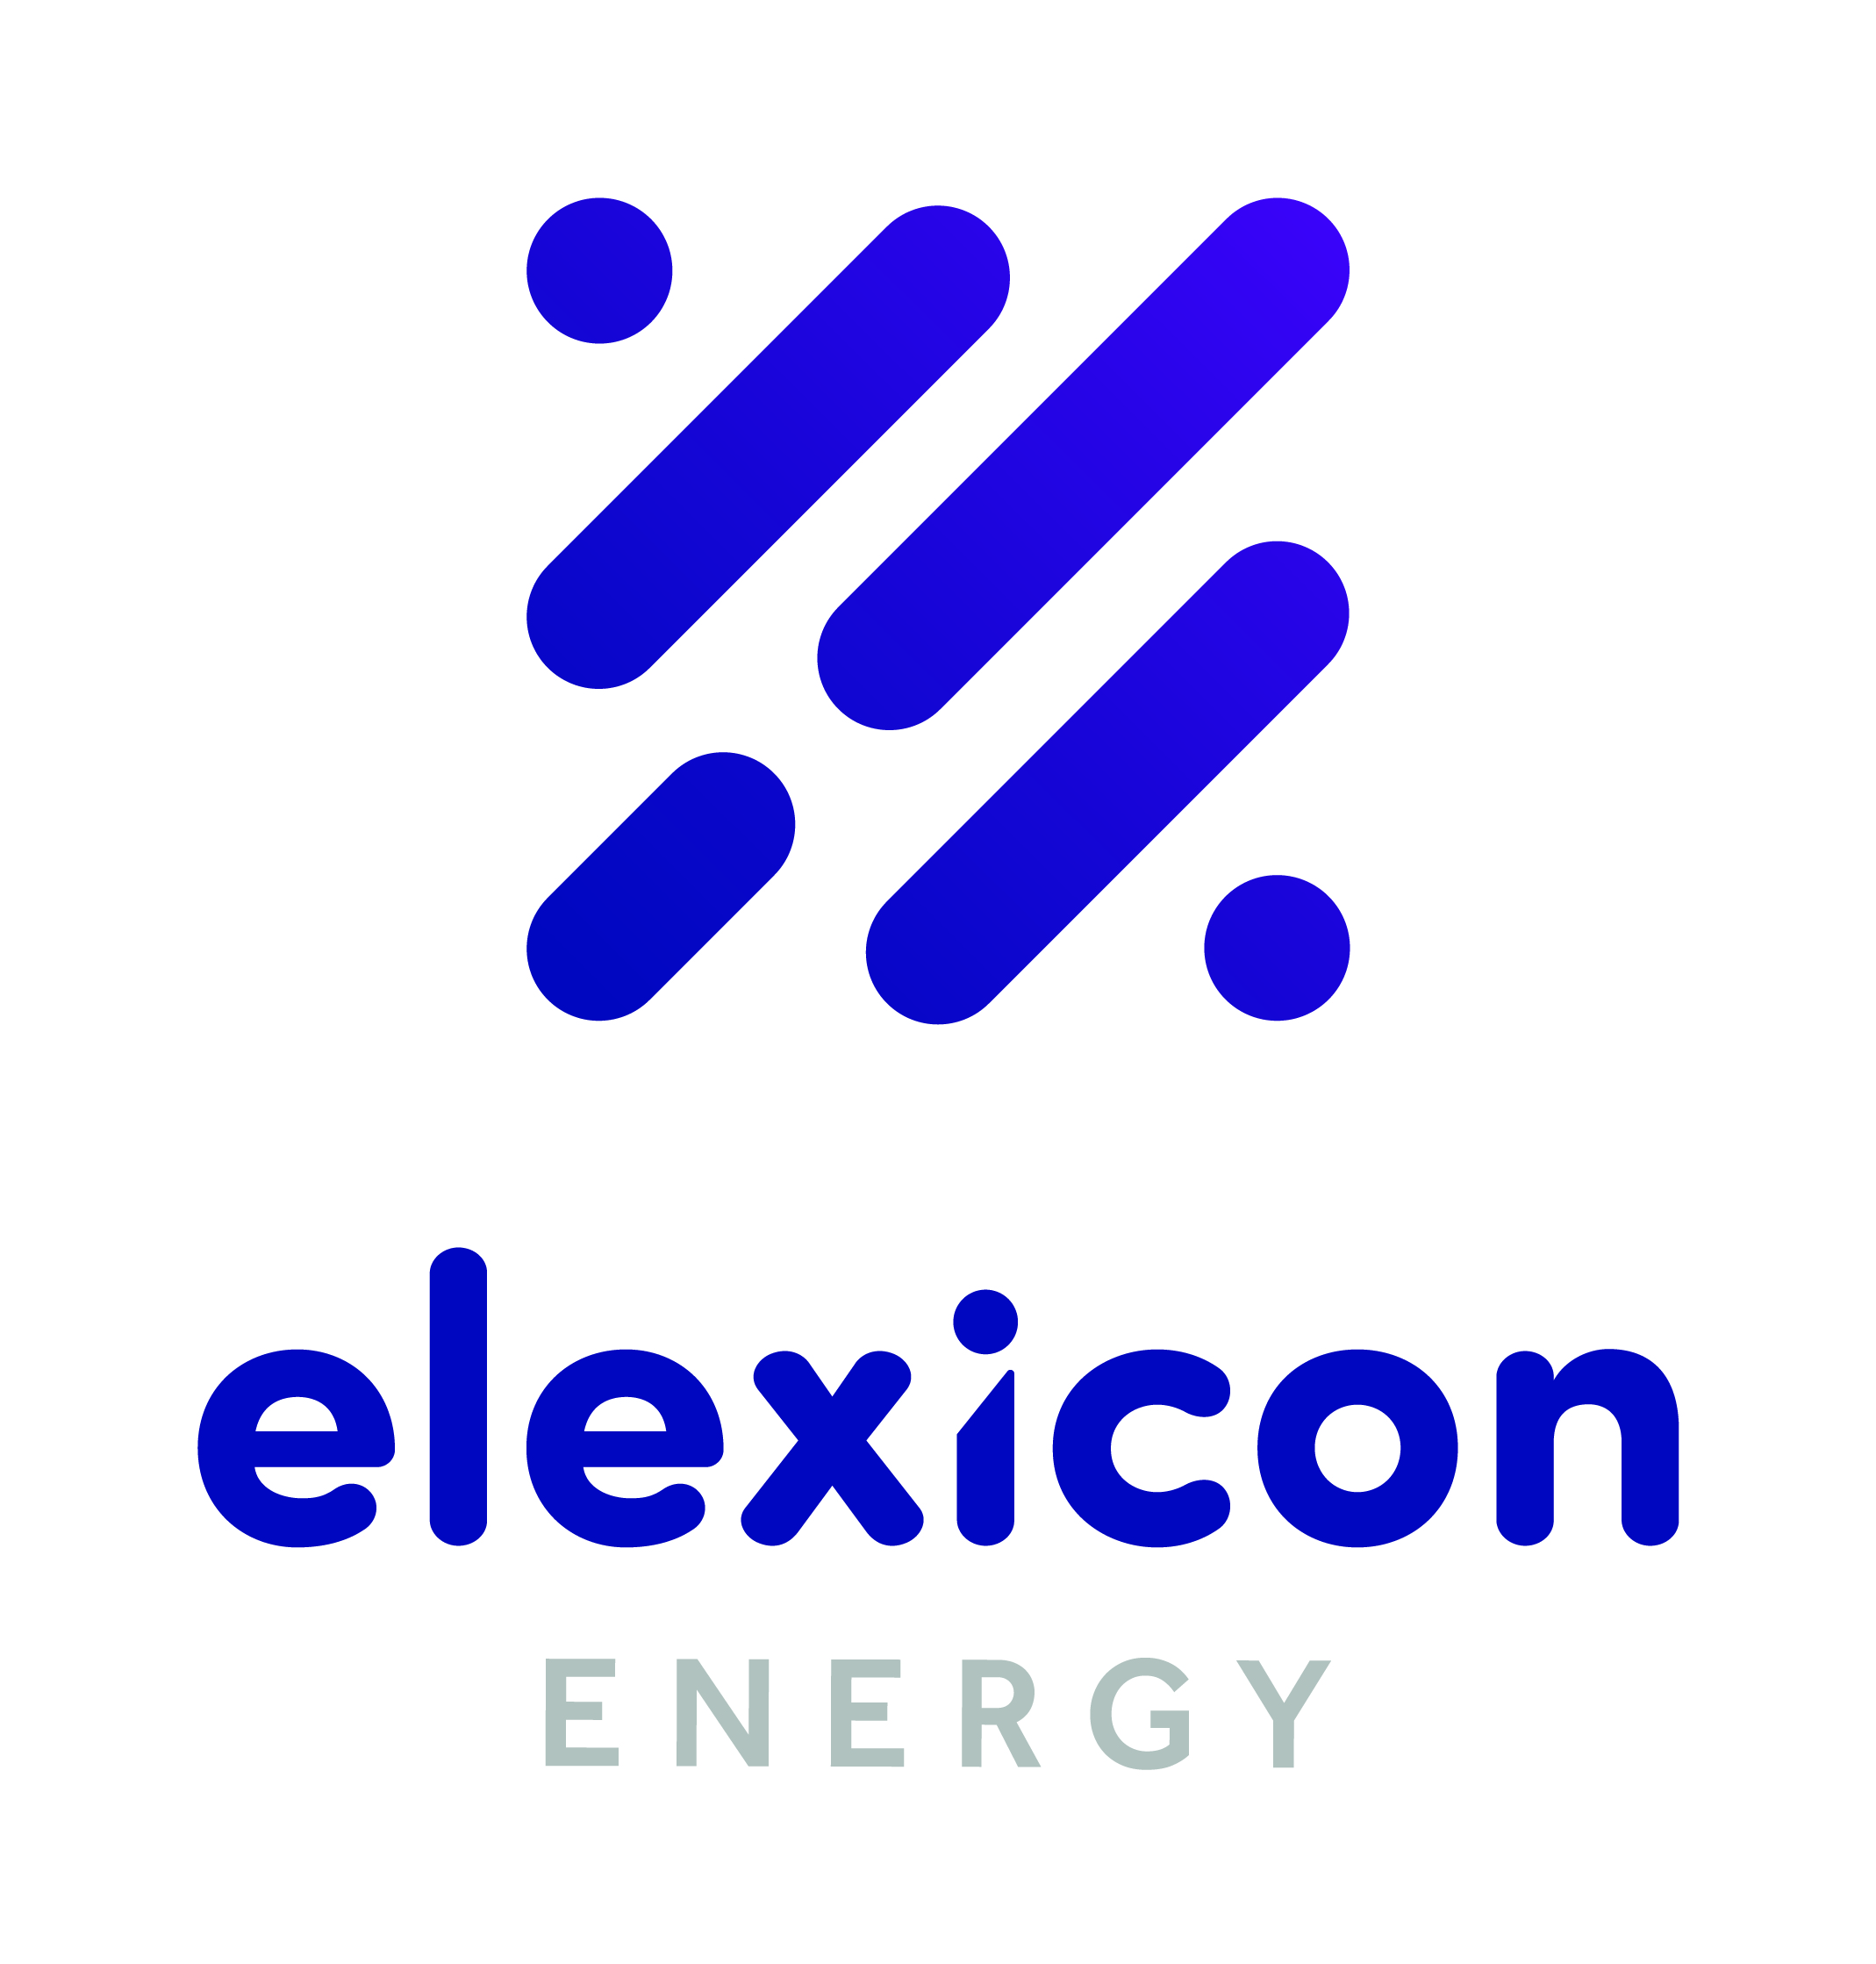 Gold - Elexicon Energy - Logo